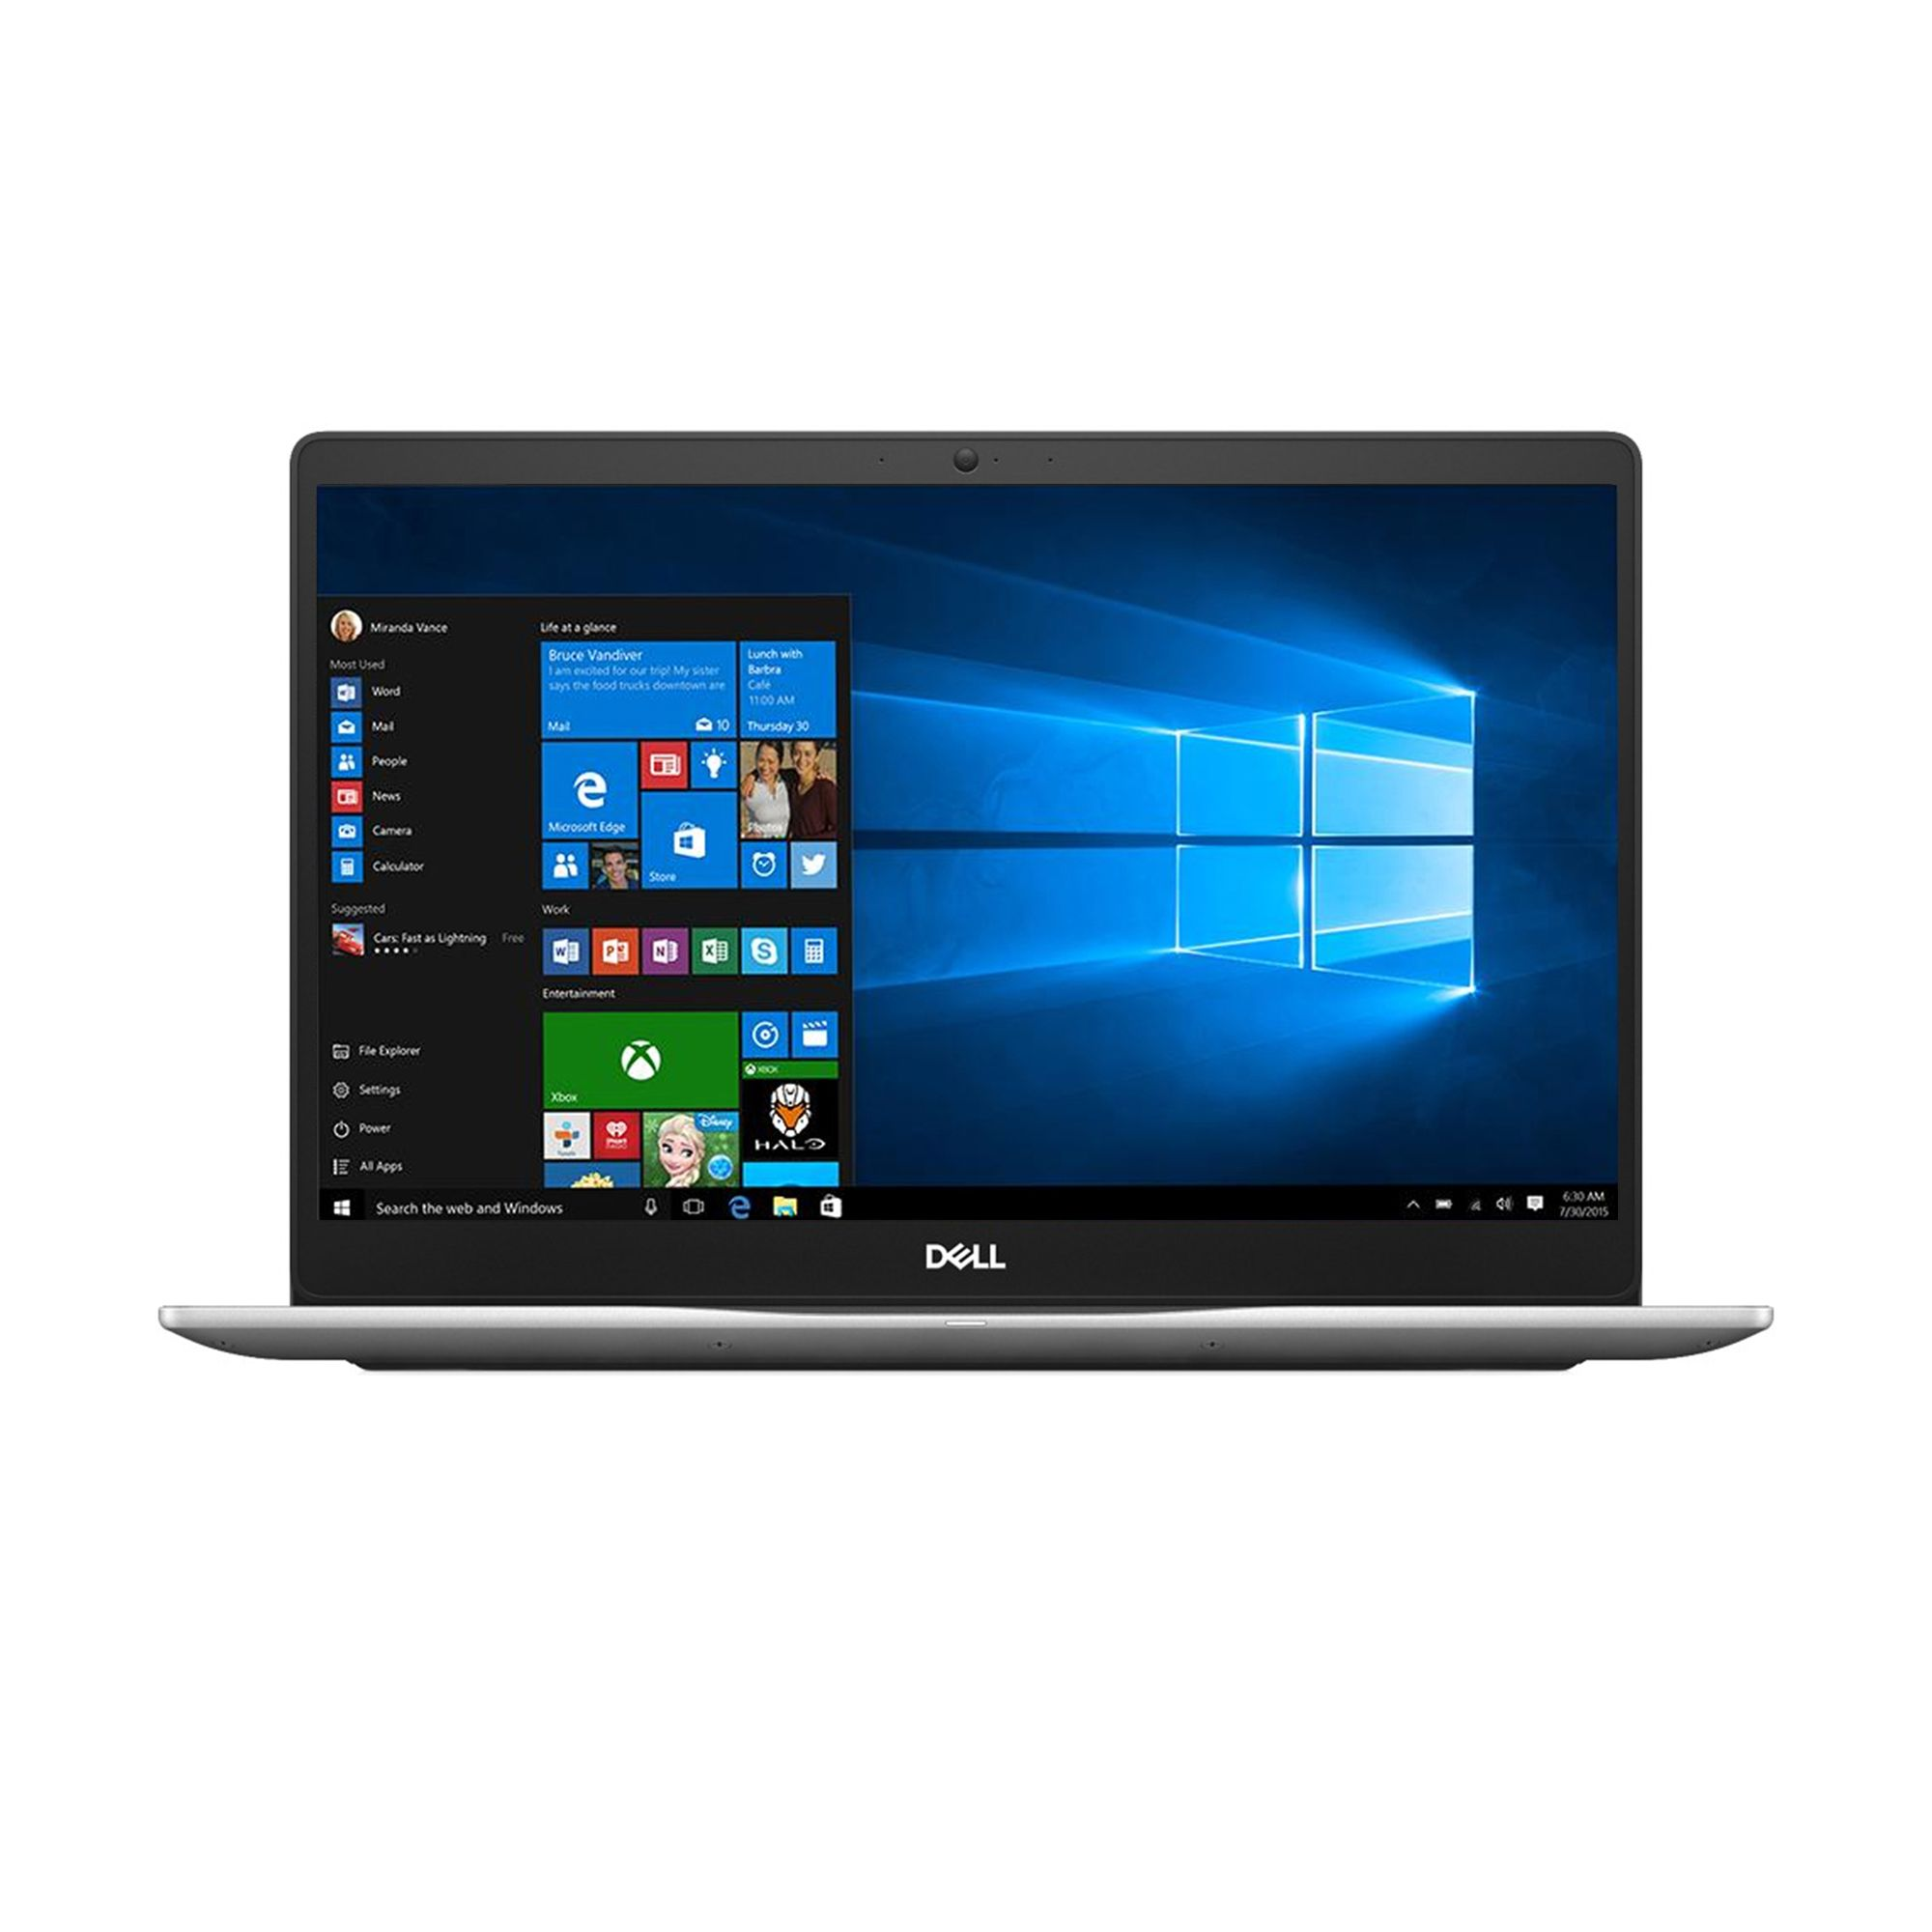 Notebook Dell Inspiron 7570 15.6 Full HD Intel Core i7-8550U 940MX-4GB RAM 8GB SSD 512GB CIS Windows 10 Pro